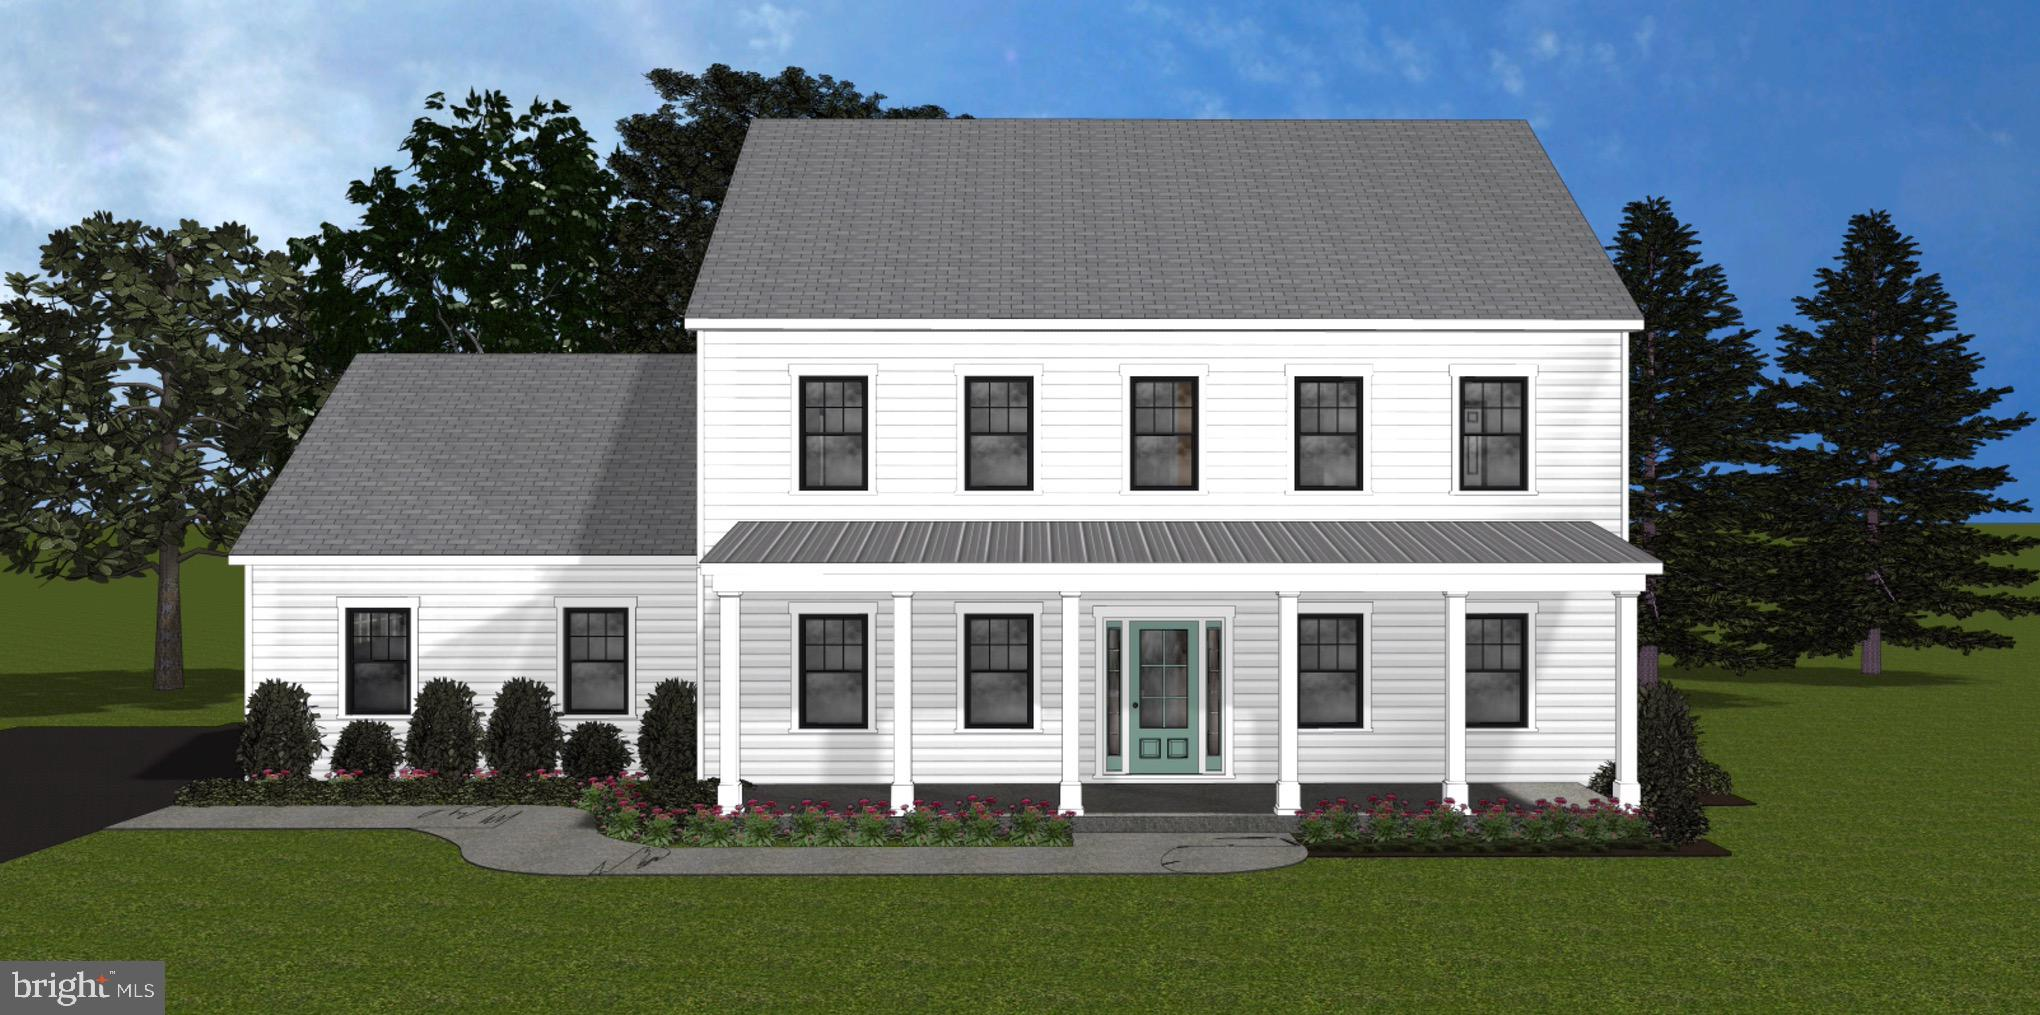 Prime location in Davidsonville!   This home is to-be-built and you can use these plans or work with the builder to design or build a custom home.    Sited on 11+ acres   This particular model has beautiful, welcoming design.    Open kitchen, large island with seating as well as separate table space.    On the upper level there are 4 bedrooms and 2 baths with loft/sitting area as well as a large walk in closet over the garage.    The basement can be optional finished space as well.     Whitehall Building has a website that can be referenced for additional plans or photos.   The photos here are representative of the builder's prior work and design ideas.    Construction-Perm financing is available through preferred lenders and a $10,000 credit toward upgrades/selections is provided when using the preferred local lenders or title company. This beautiful lot is located adjacent to a 14 acre gated home and follows St George Barber Rd up to approximately the entrance to Harbor Hills. A Perc test for a septic system has already been completed and will accommodate any size home of your choice. If you like a full service builder and quality construction this is a great opportunity to build in a highly sought after area.   Blue Ribbon Schools and a great commuting location for DC/Baltimore/Ft Meade.    Just minutes to shopping, restaurants and historic Annapolis.    We would love to talk with you about taking the next steps toward making this your home.    The builder is available to meet with qualified buyers.